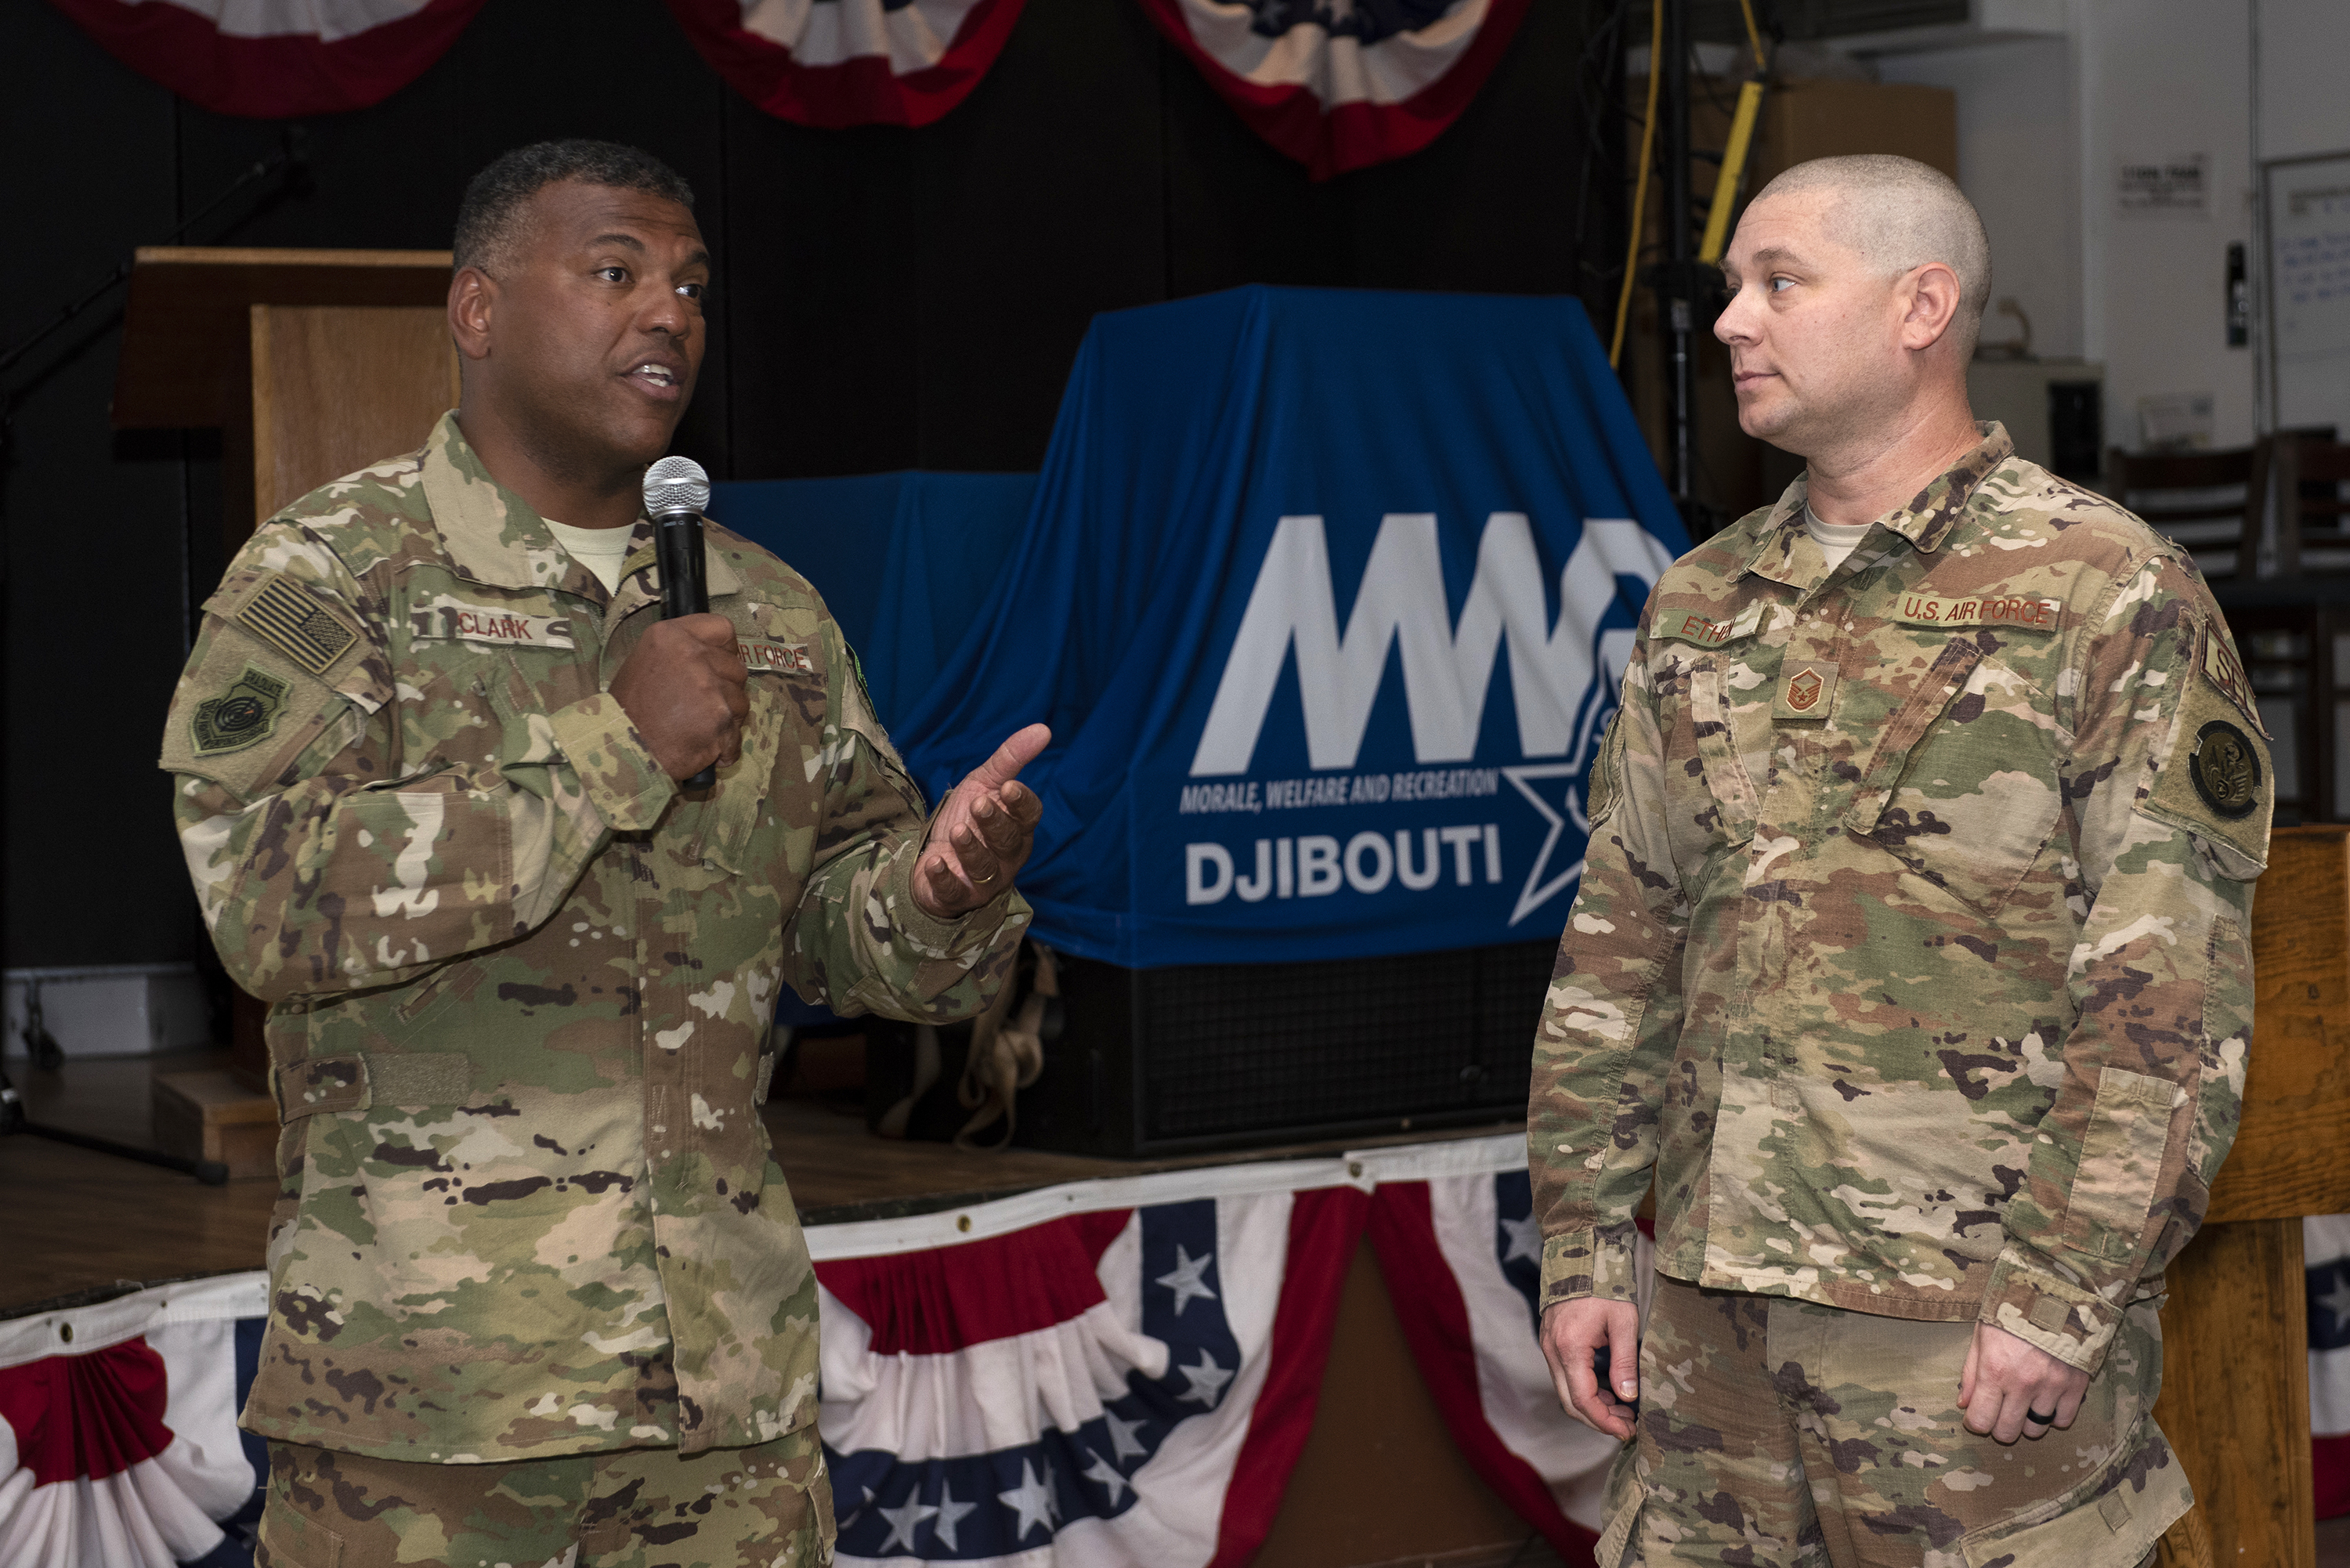 U.S. Air Force Lt. Gen. Richard Clark, commander, 3rd Air Force, recognizes the hard work and dedication of Master Sgt. David Ethen, munitions flight chief, 726th Expeditionary Air Base Squadron, 449th Air Expeditionary Group on Camp Lemonnier, Djibouti, Aug. 18, 2018. Ethen was identified as a top performer by his command and was recognized for his accomplishments during a visit from the 3rd Air Force's senior leadership. (U.S. Air National Guard photo by Master Sgt. Sarah Mattison)